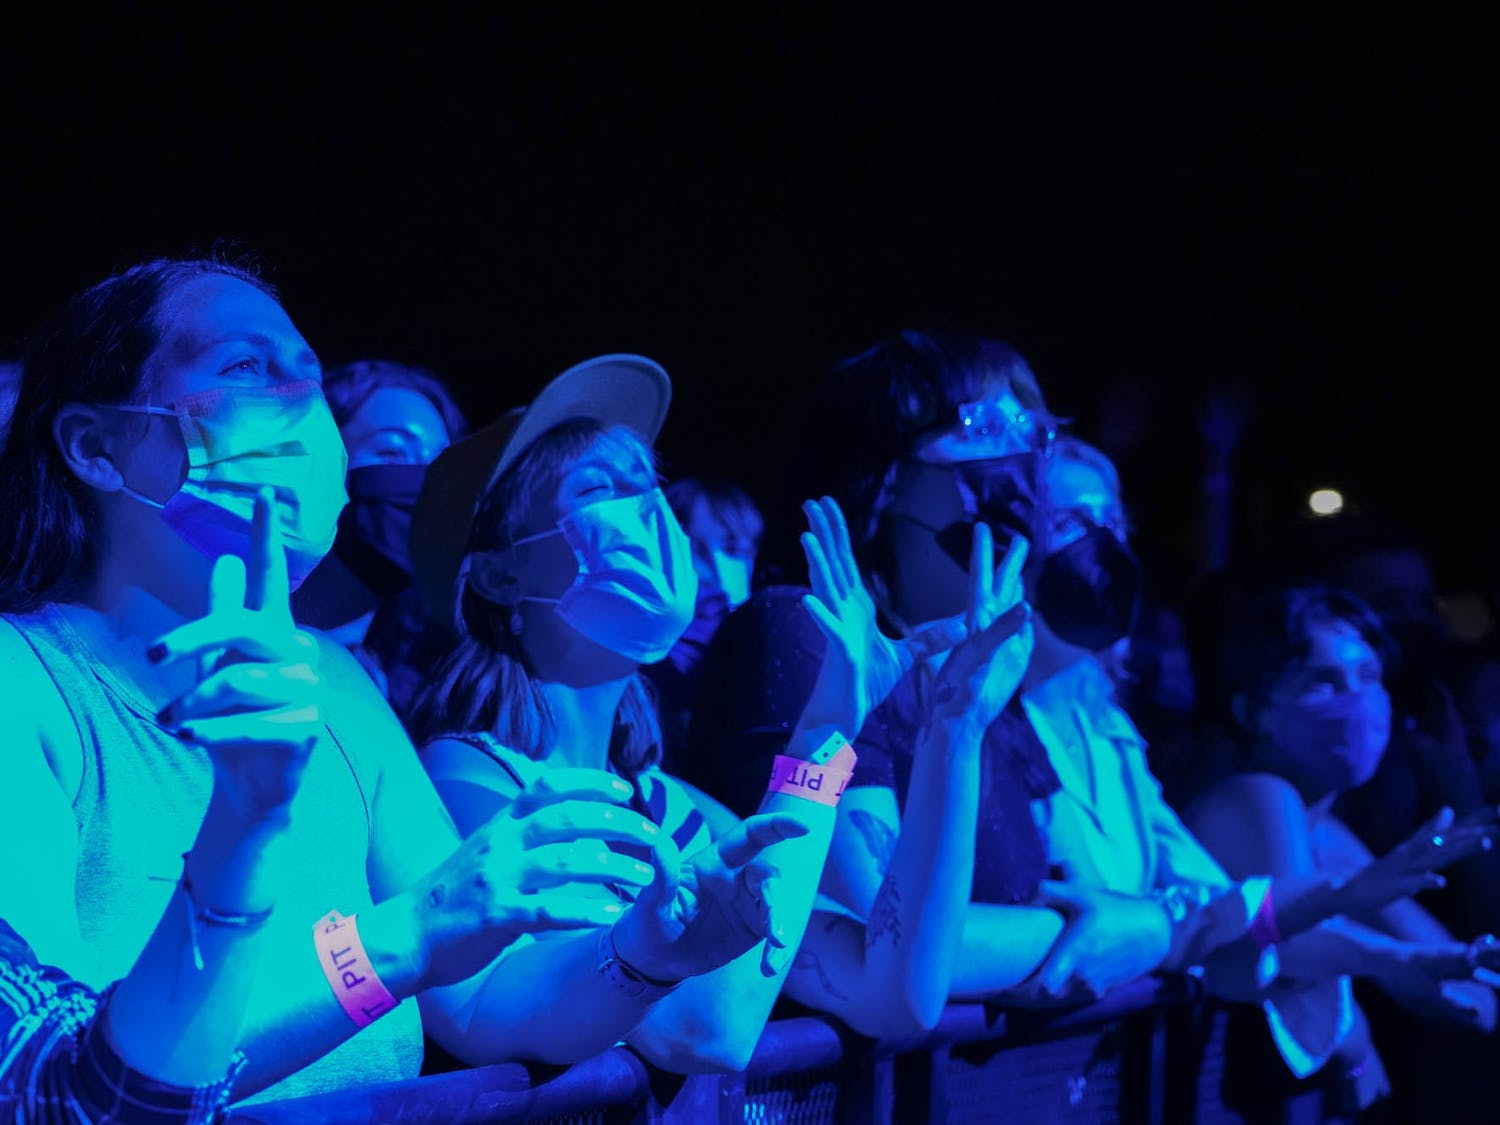 Grace Paton, Kerry Lott, and Erica Essigman watch the Phoebe Bridgers show at the Red Hat Ampitheater in Raleigh, NC, on Sept. 21, 2021.